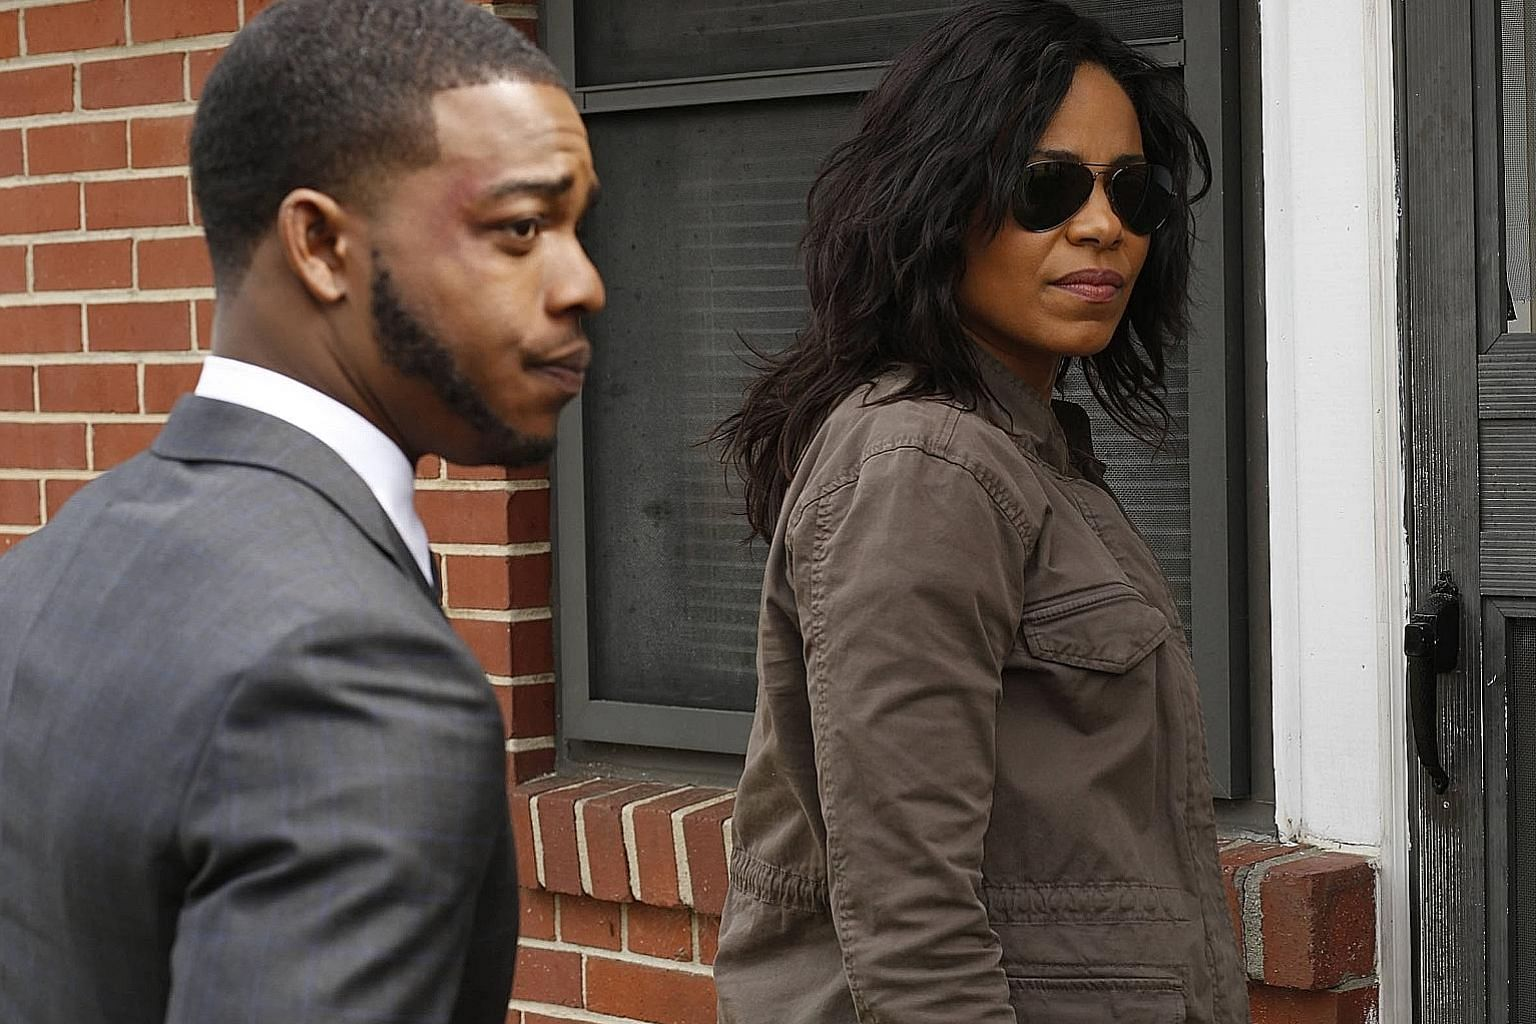 Stephan James plays the lawyer and Sanaa Lathan is the federal investigator in Shots Fired. The new crime drama was created by husband- and-wife screenwriters Gina and Reggie Bythewood.